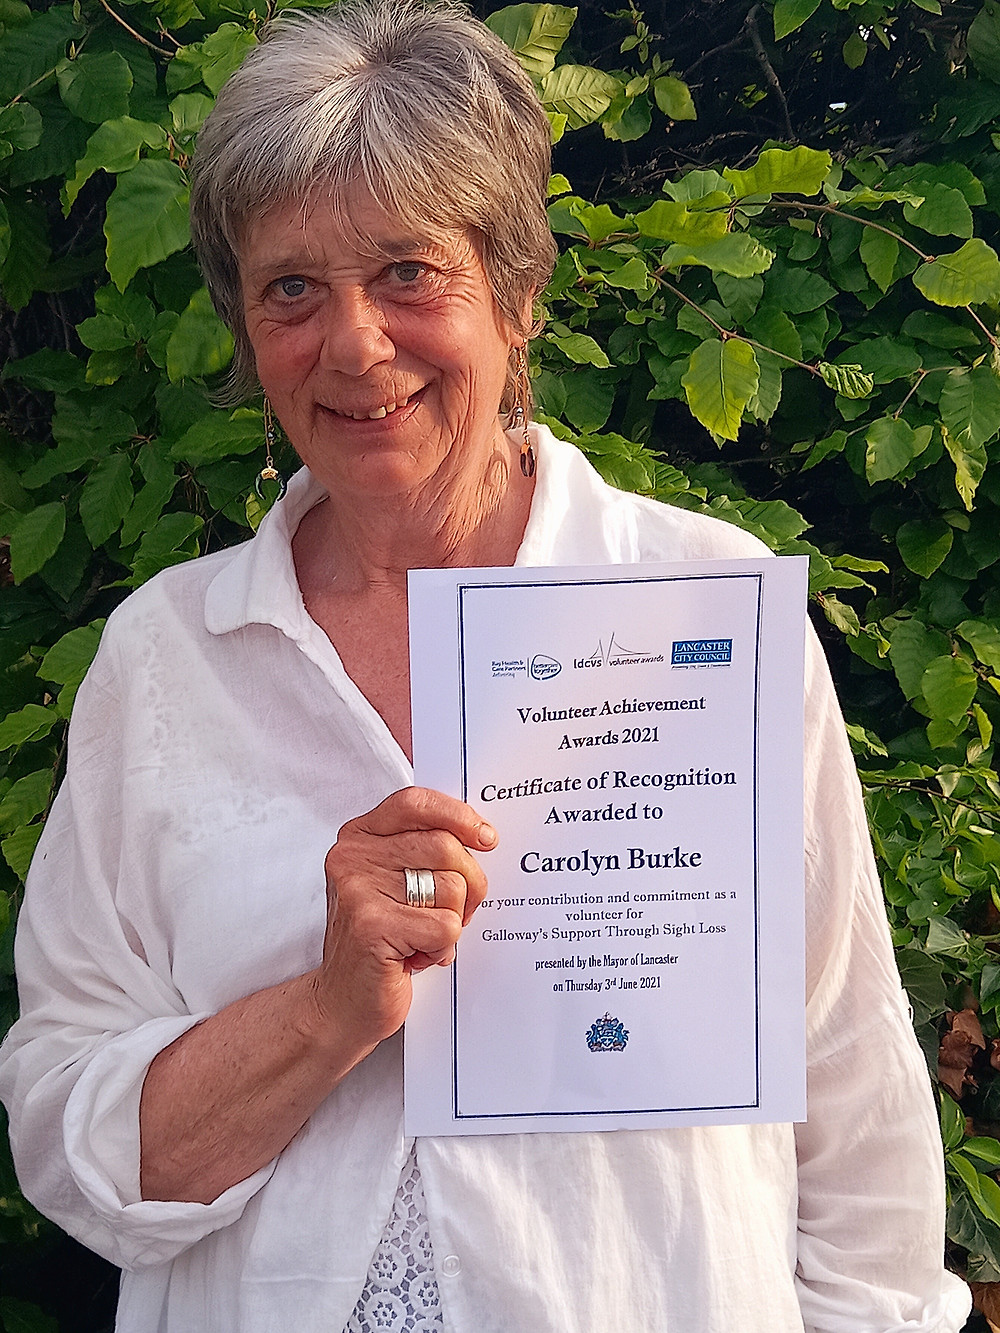 Carolyn is wearing a white shirt and is holding her certificate. She is stood in front of a bush